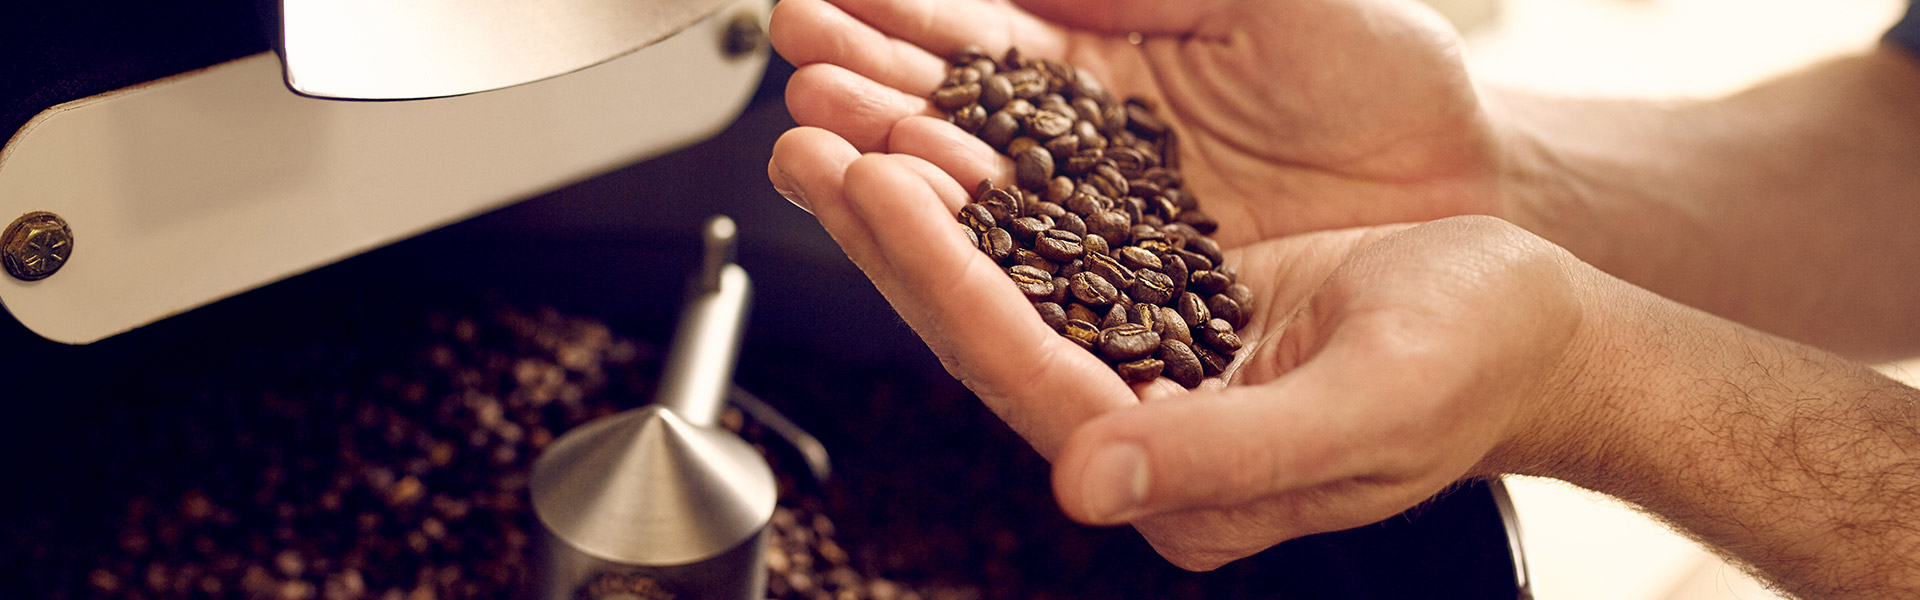 finding-the-best-coffee-beans.jpg